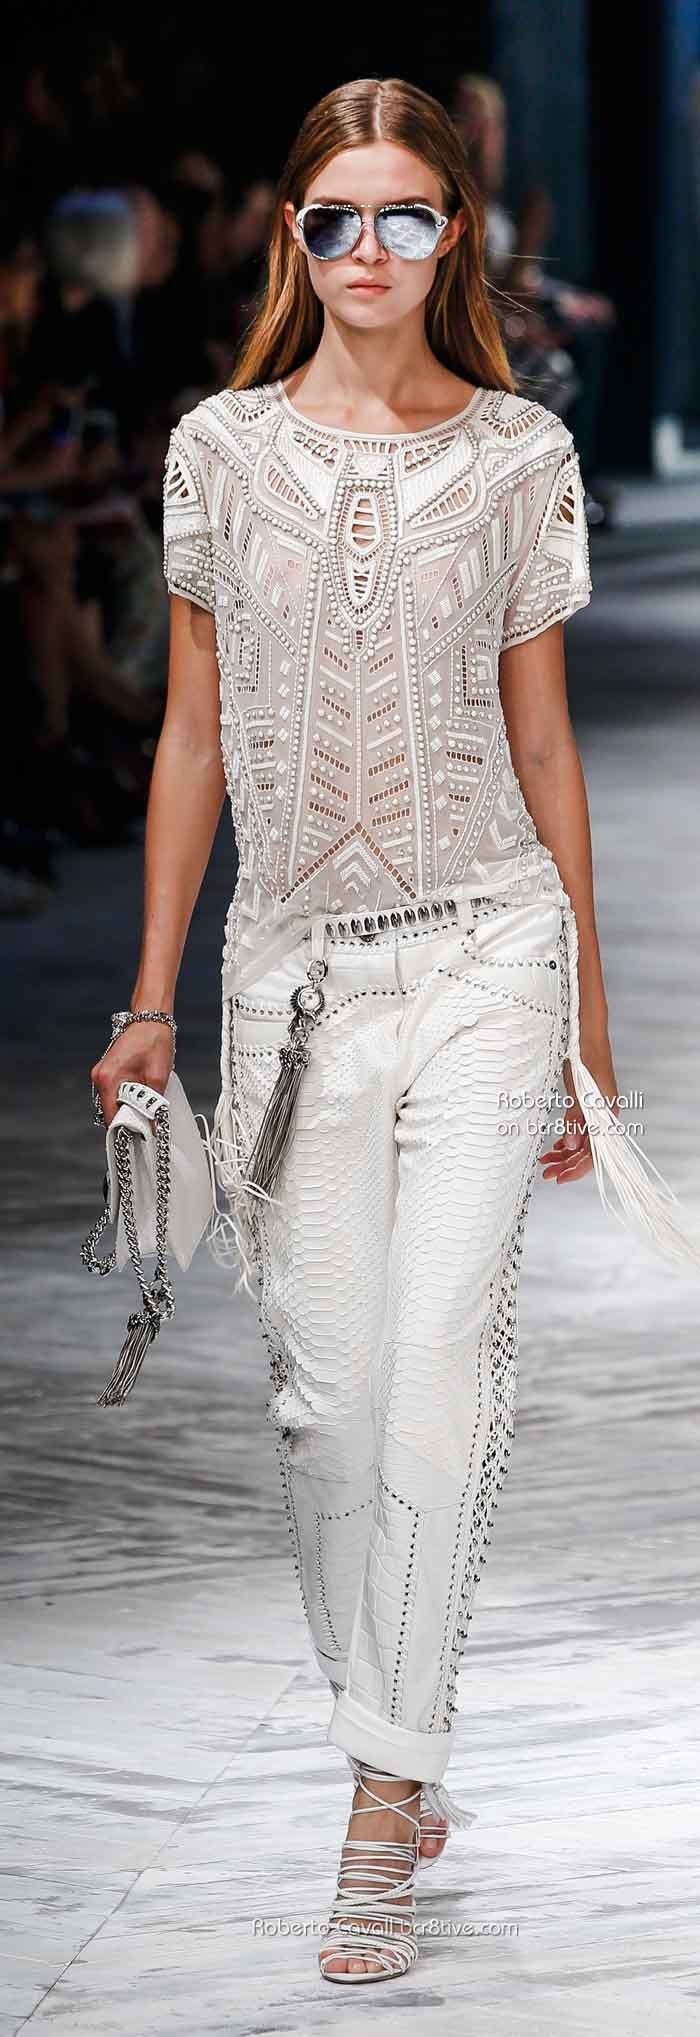 Roberto Cavalli Spring 2014, Gosh I am dying for this outfit!